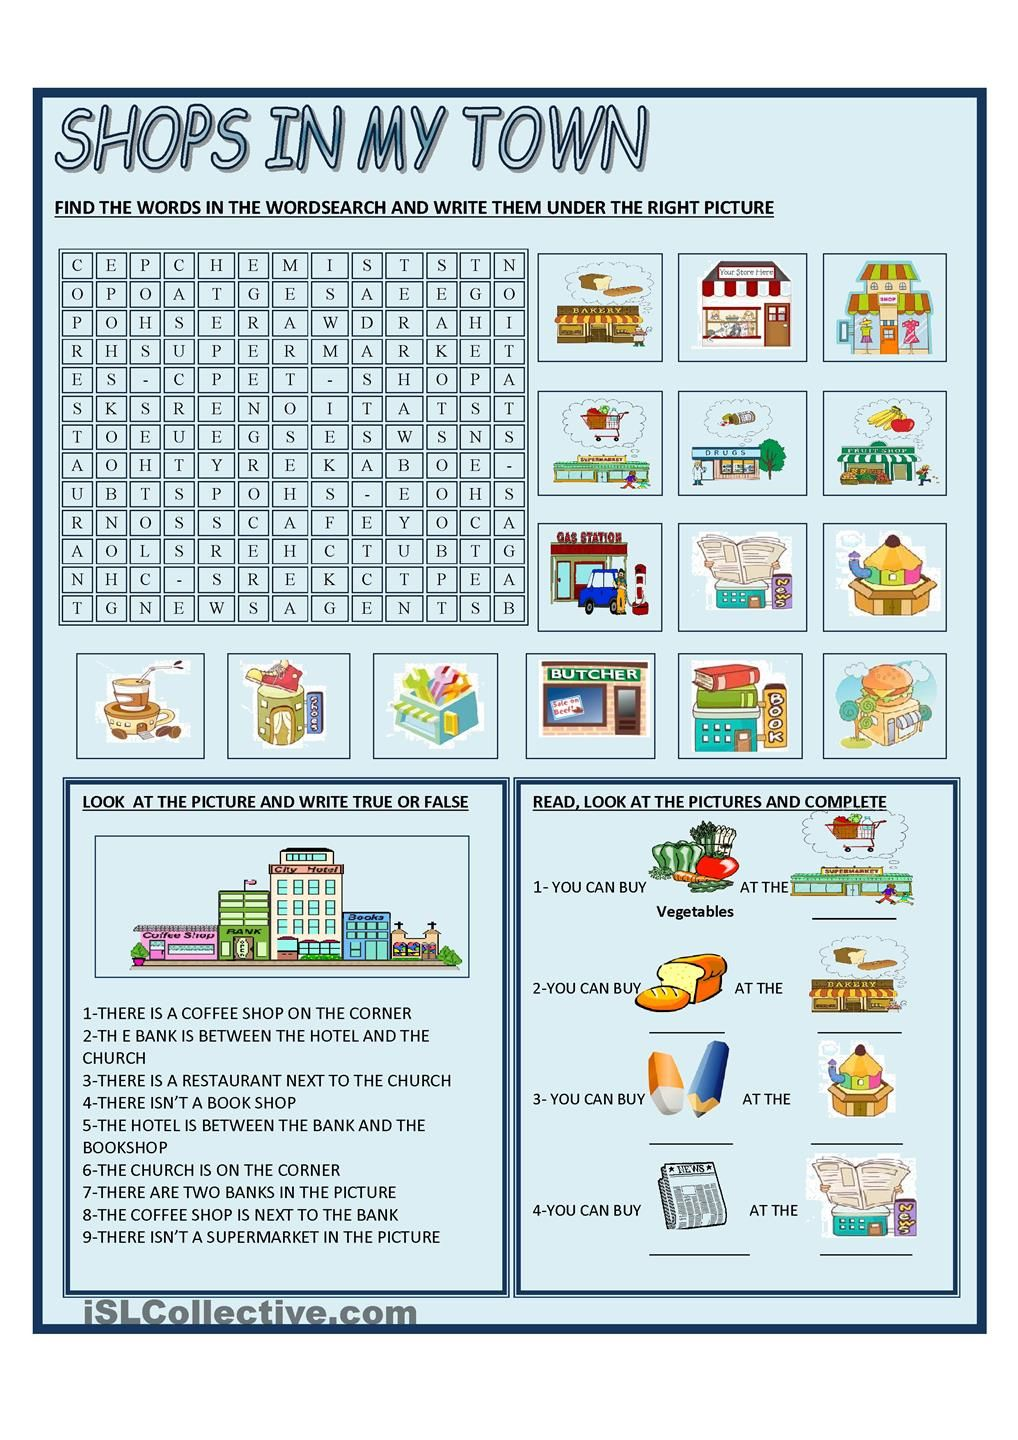 worksheet Shopping Worksheets shops in my town 5 pinterest english shopping and worksheets going worksheet free esl printable made by teachers